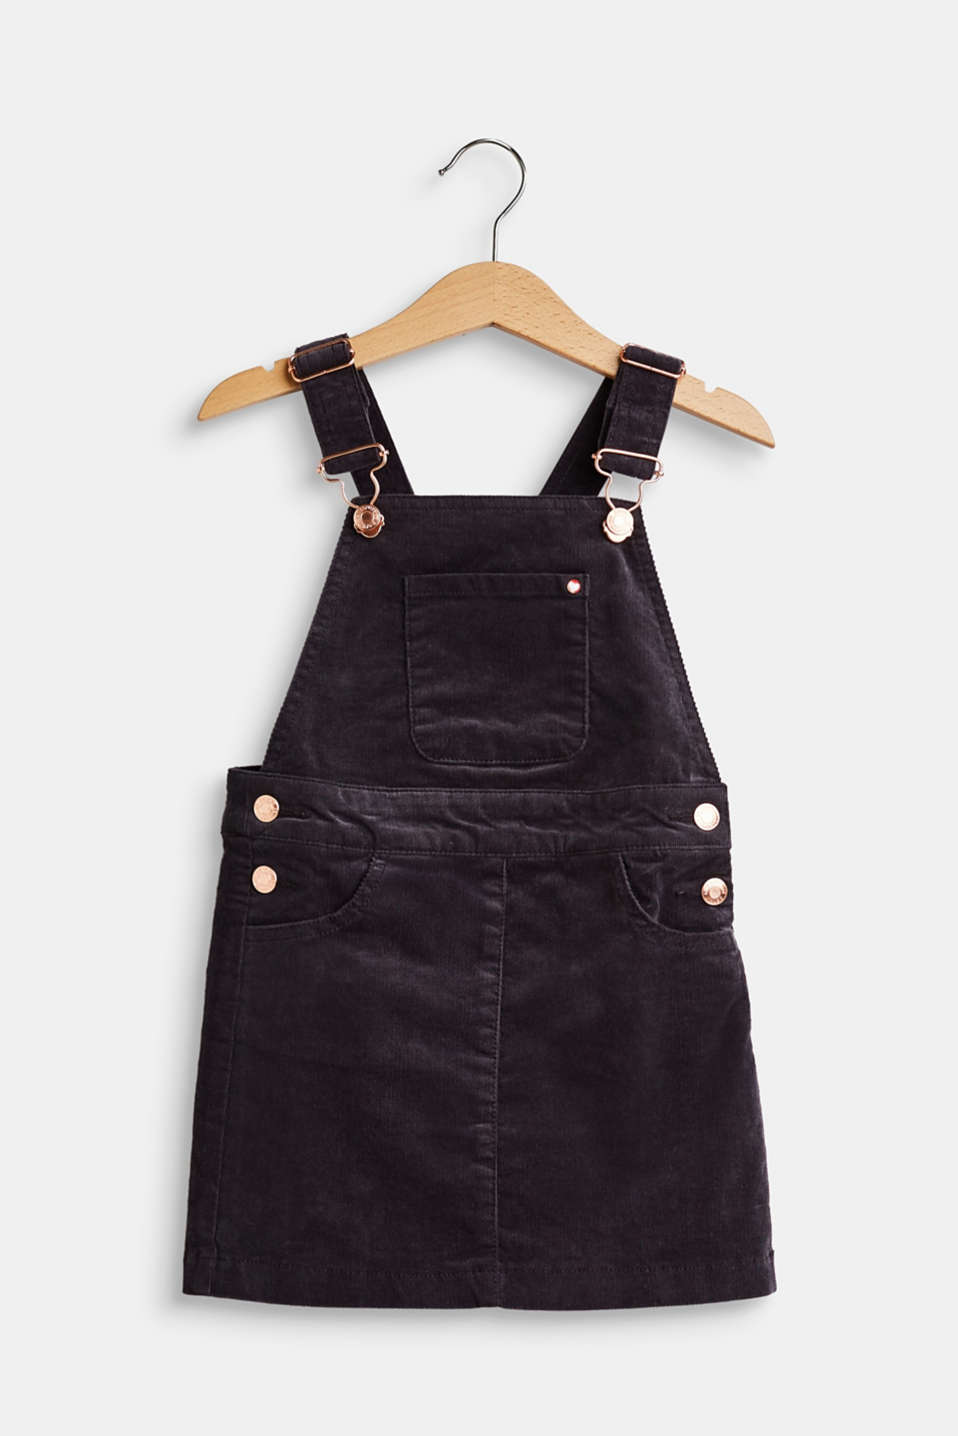 Esprit - Cotton corduroy dungaree skirt with stretch